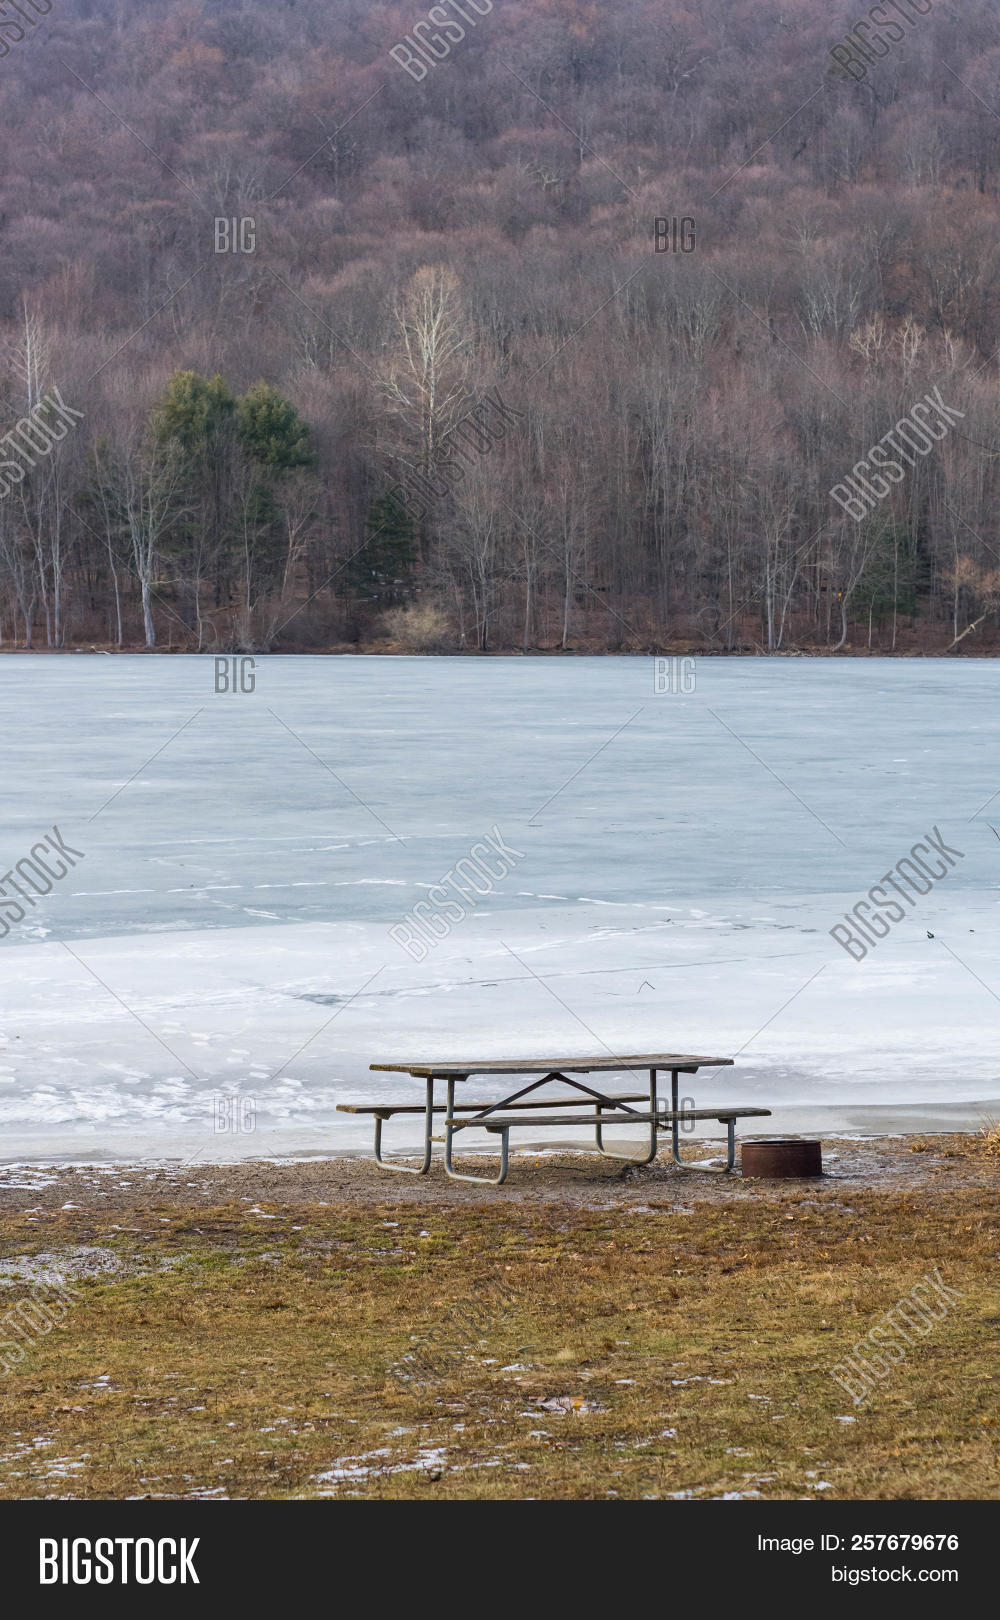 Picnic Table Fire Pit Image Photo Free Trial Bigstock - Fire picnic table